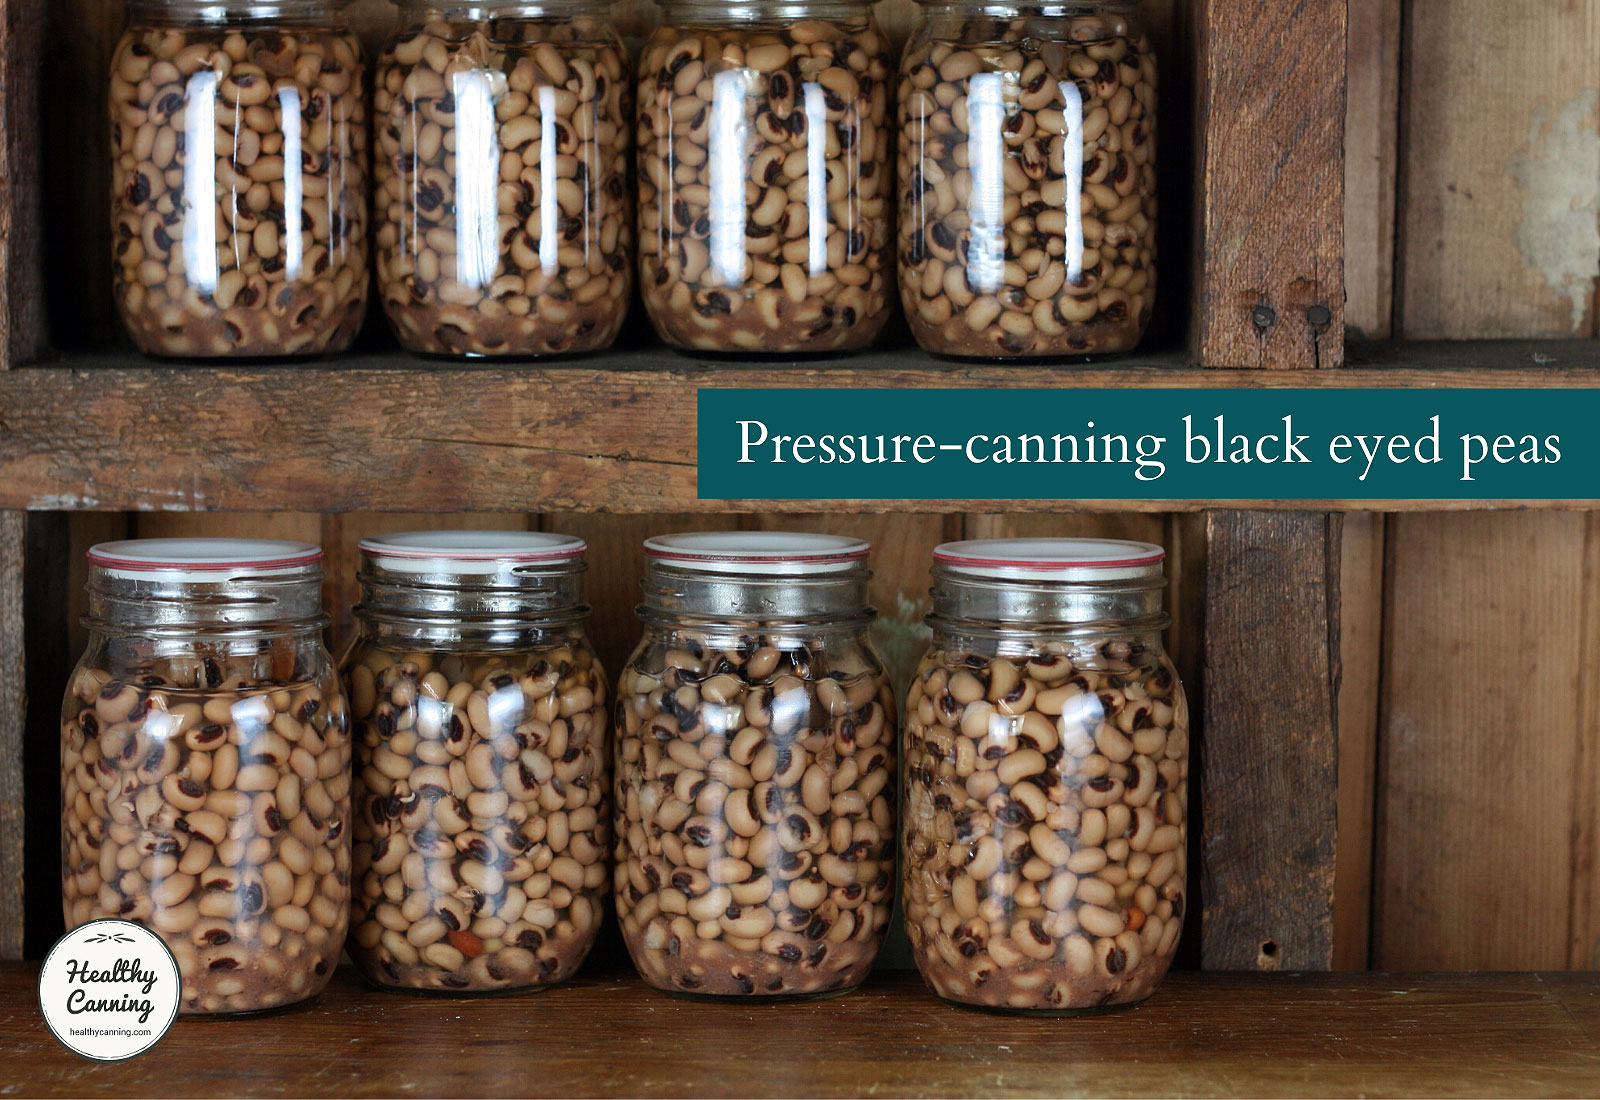 Pressure canned black-eyed peas in jars